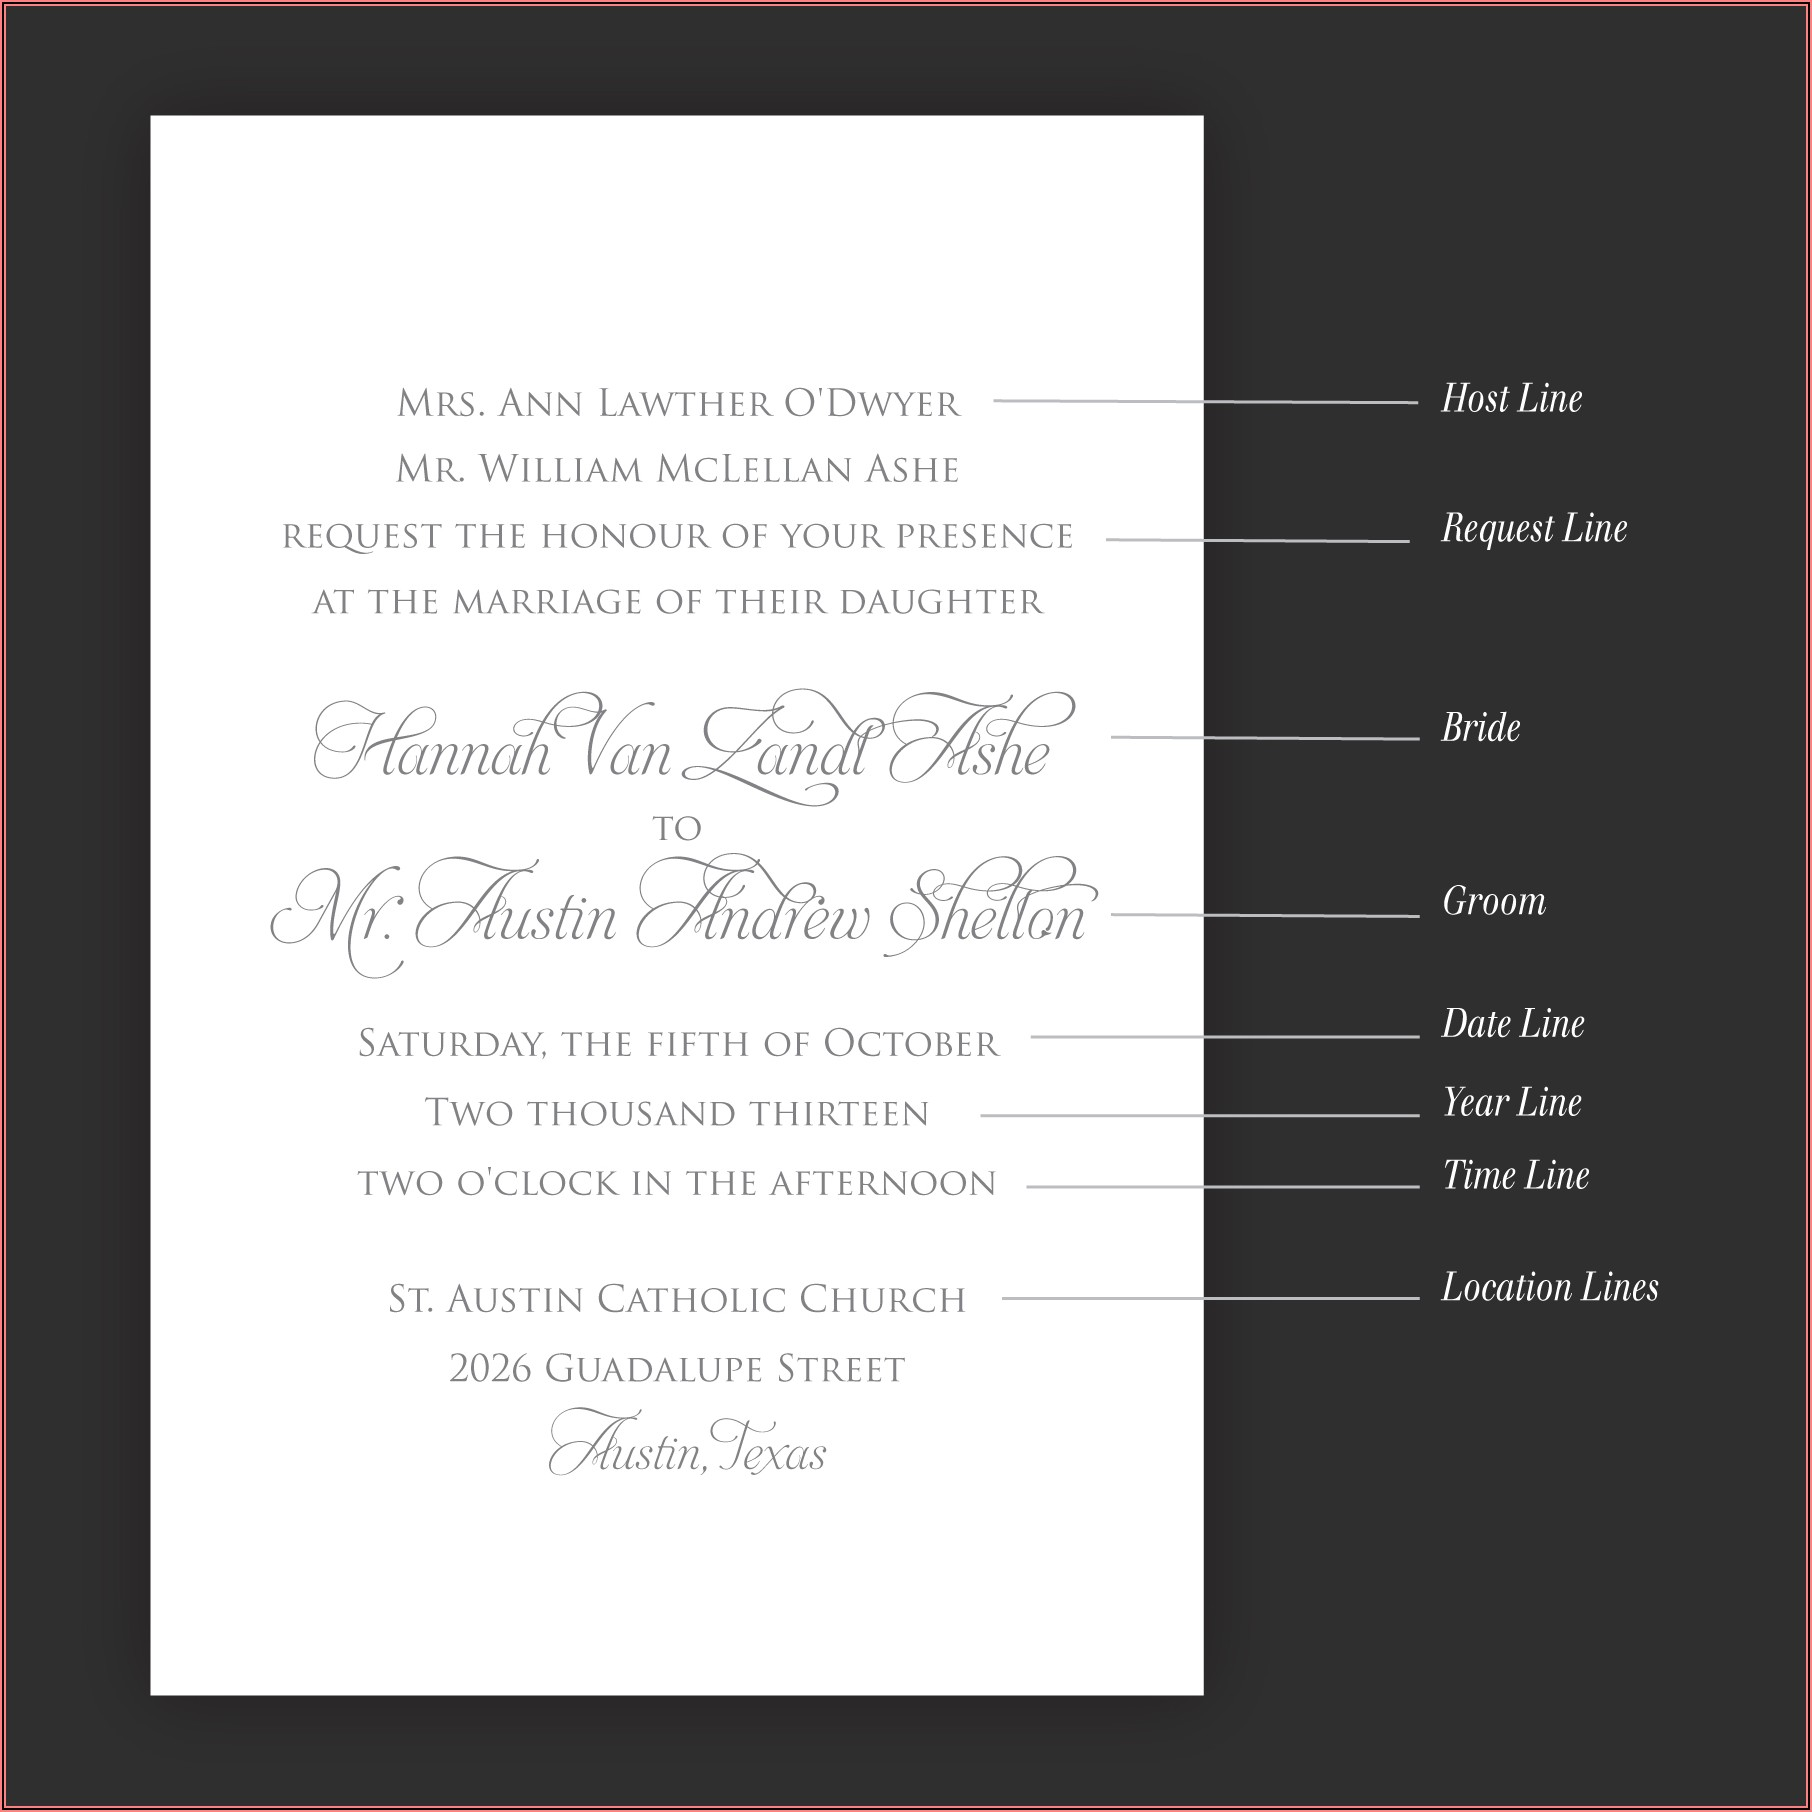 Wedding Invitation Wording Etiquette Bride's Parents Hosting